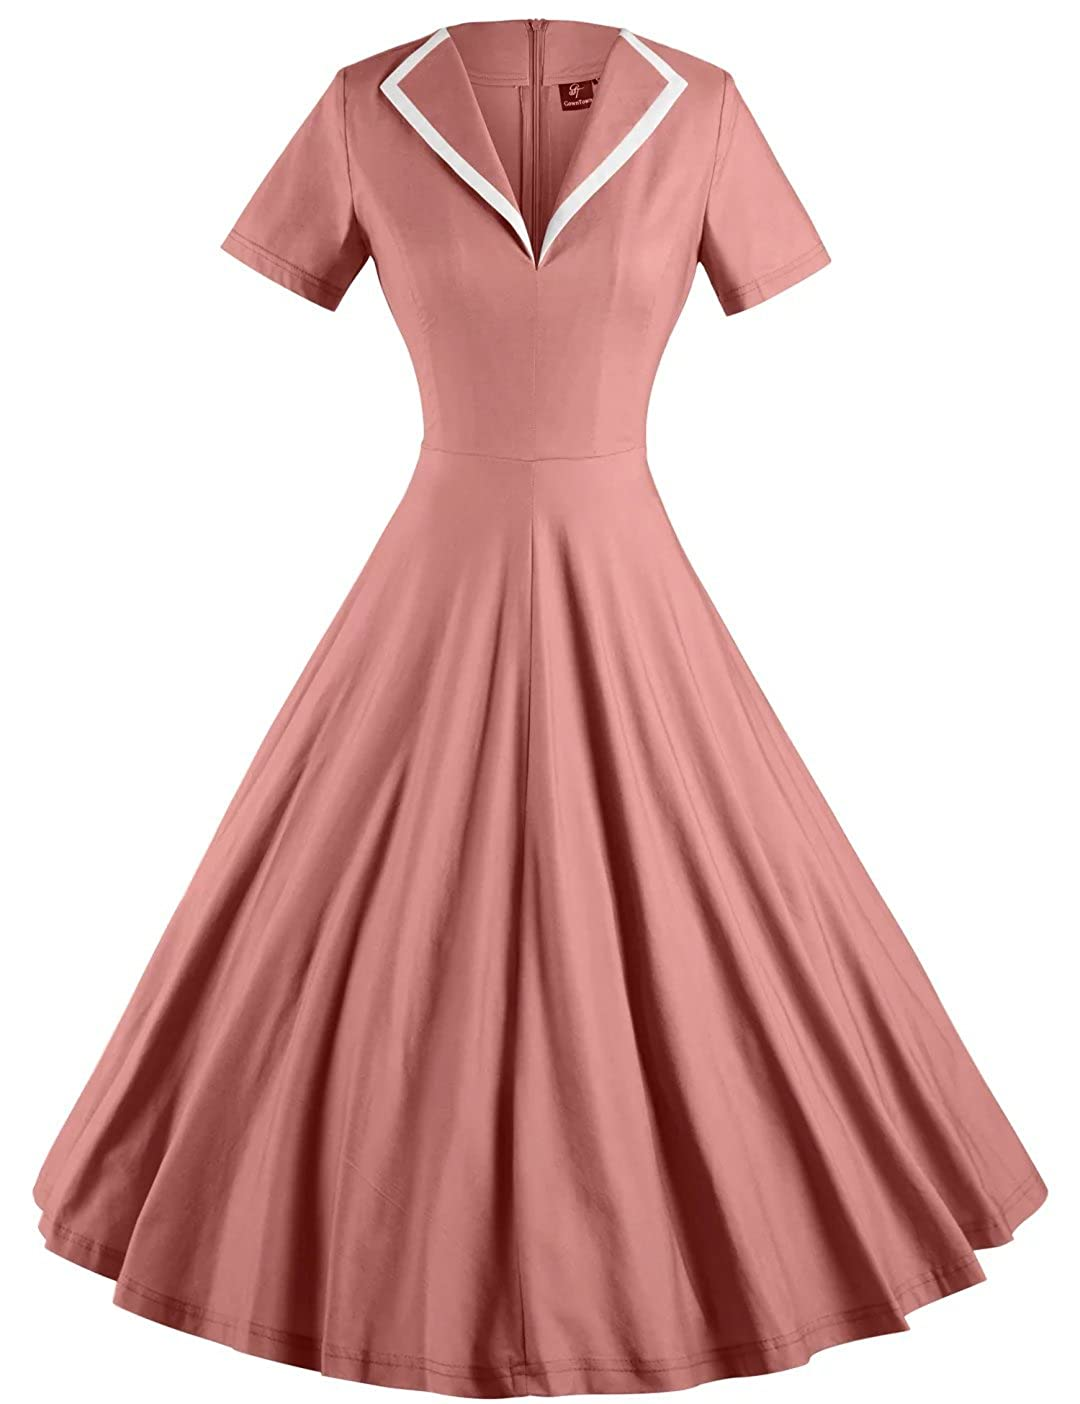 1950s Costumes- Poodle Skirts, Grease, Monroe, Pin Up, I Love Lucy GownTown Womens 1950s Retro Vintage V-Neck Party Swing Dress $35.98 AT vintagedancer.com